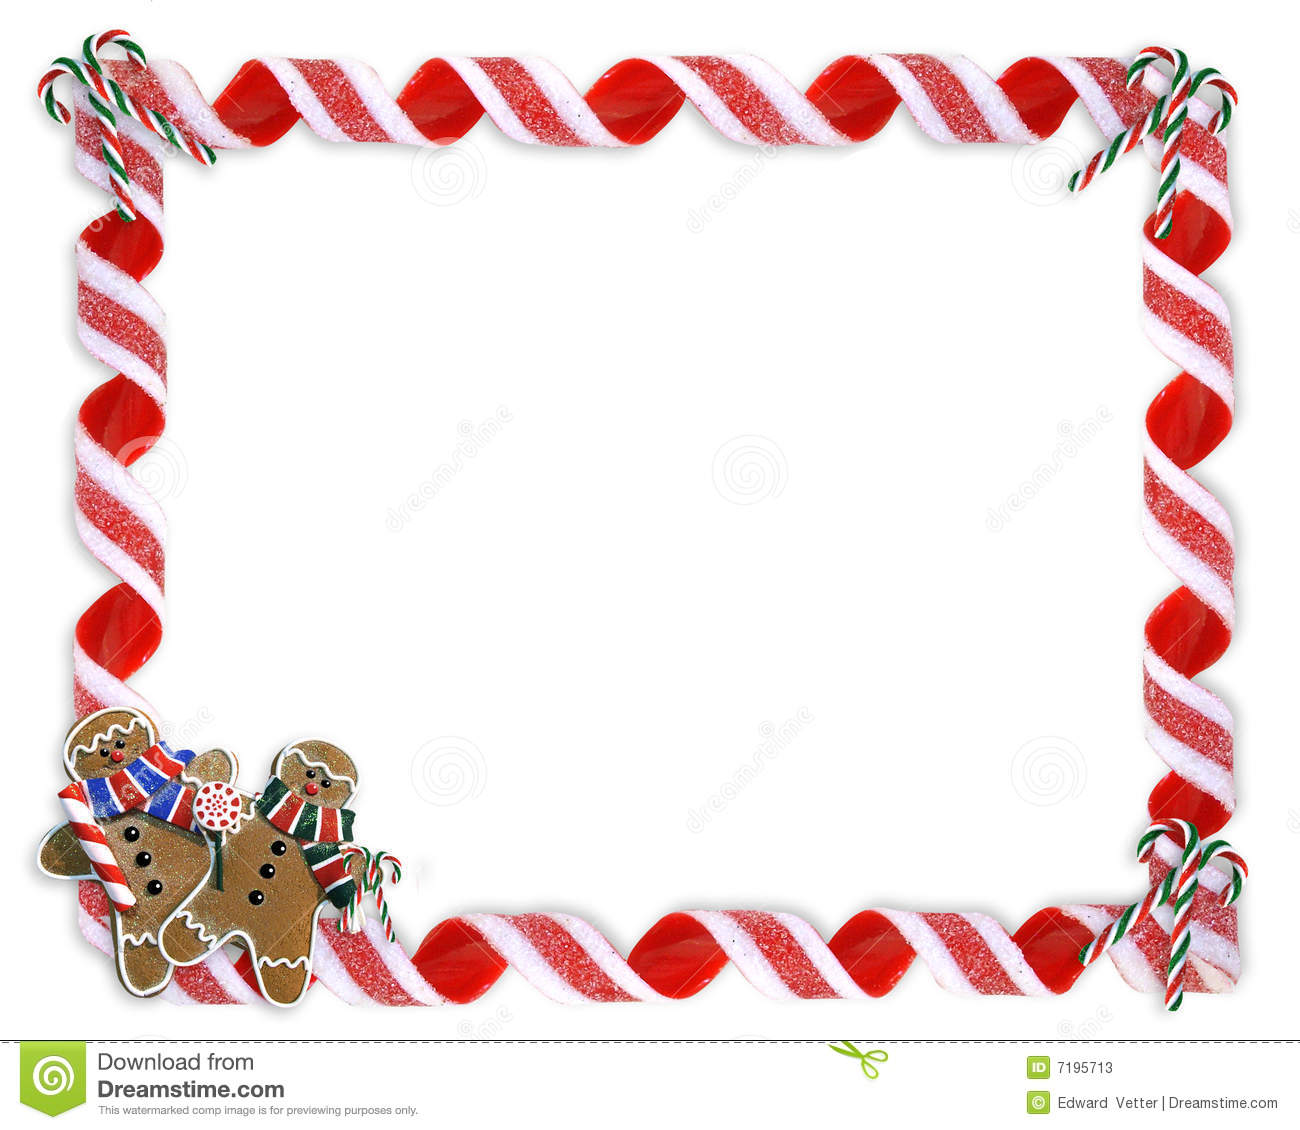 Christmas Cookies And Treats Border Royalty Free Stock Photo.